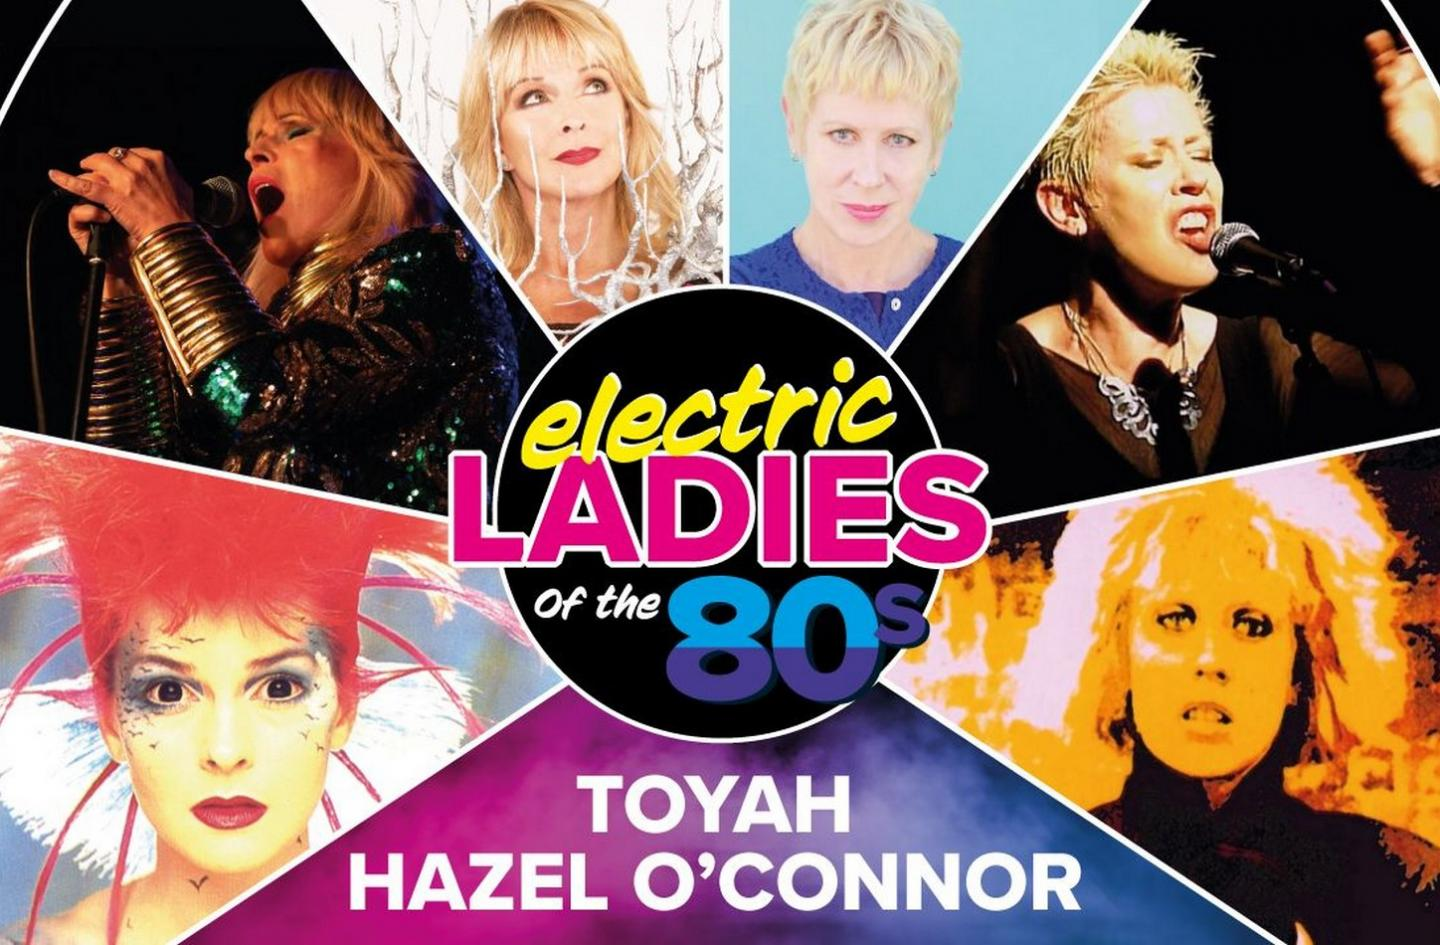 Toyah and Hazel O'Connor